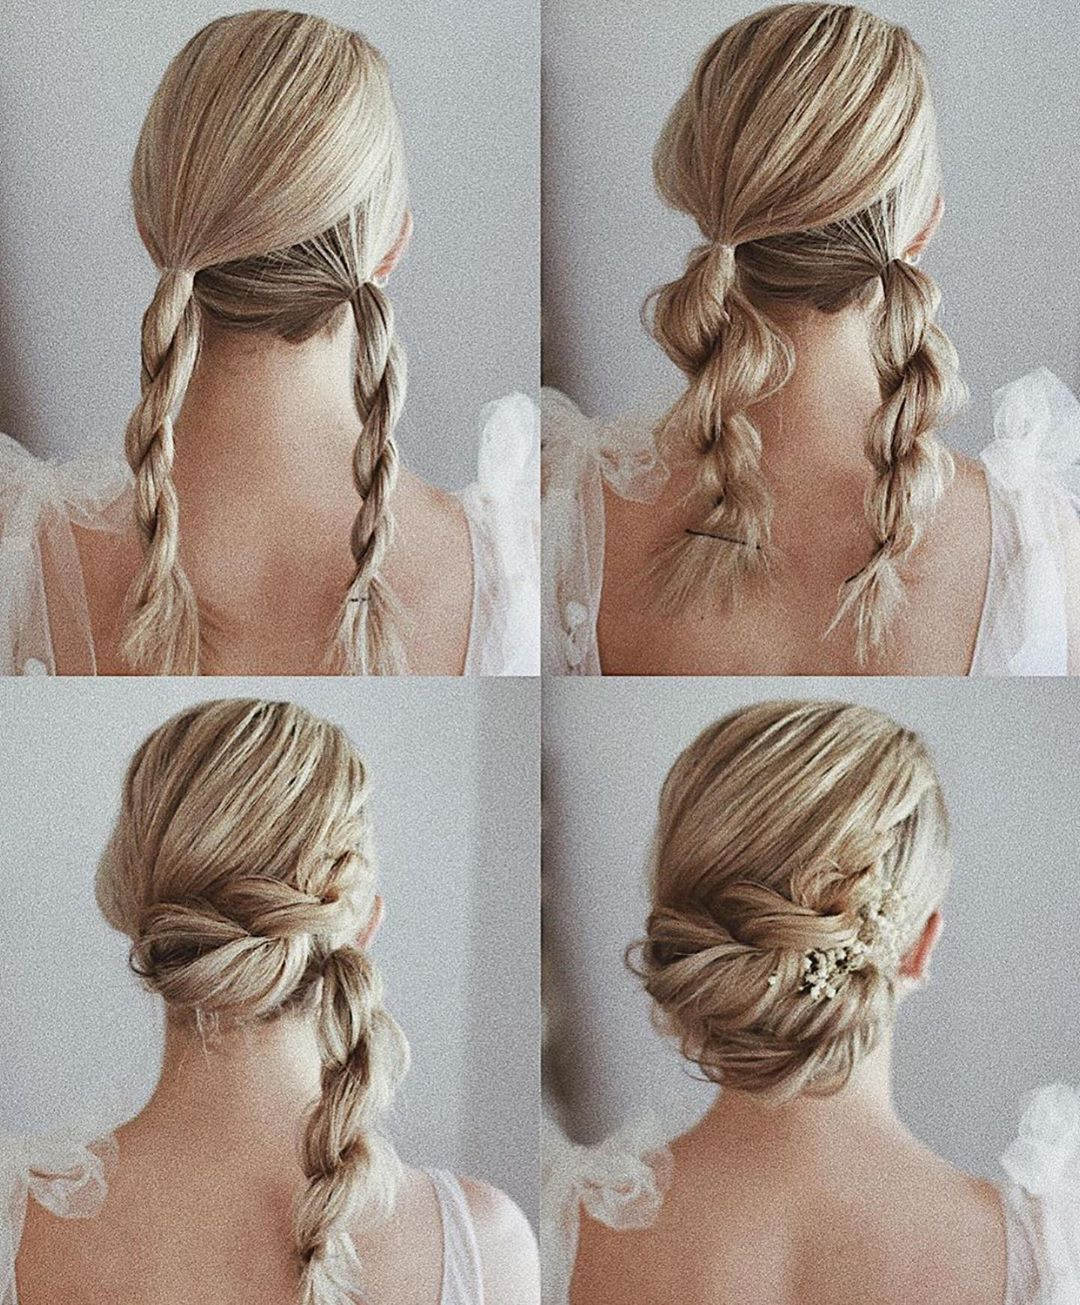 Braids Updos Inspiration On Instagram Comment Yes If You Love These Step By Step Posts From In 2020 Hair Styles Easy Homecoming Hairstyles Elegant Wedding Hair